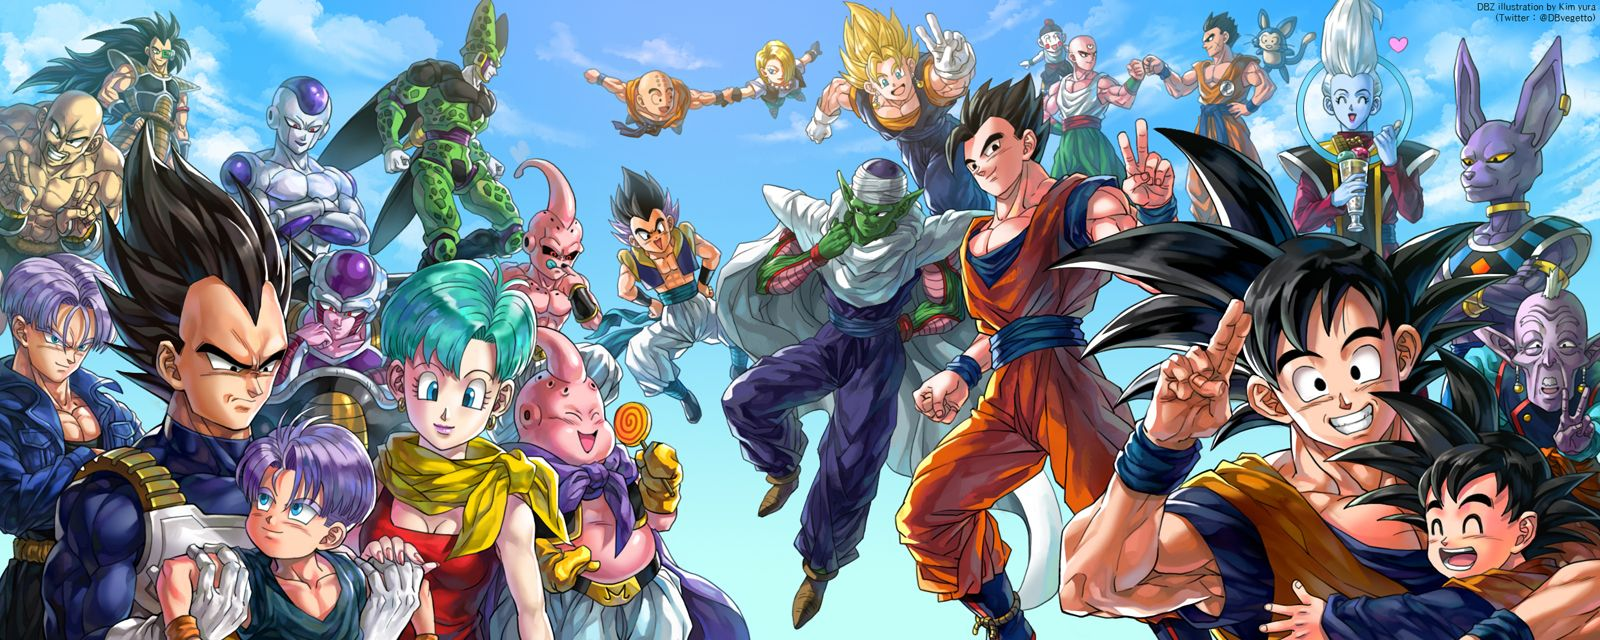 Top 10 Strongest Most Powerful Dragon Ball Z Characters Of All Time Dragon Ball Super Wallpapers Dragon Ball Wallpapers Dragon Ball